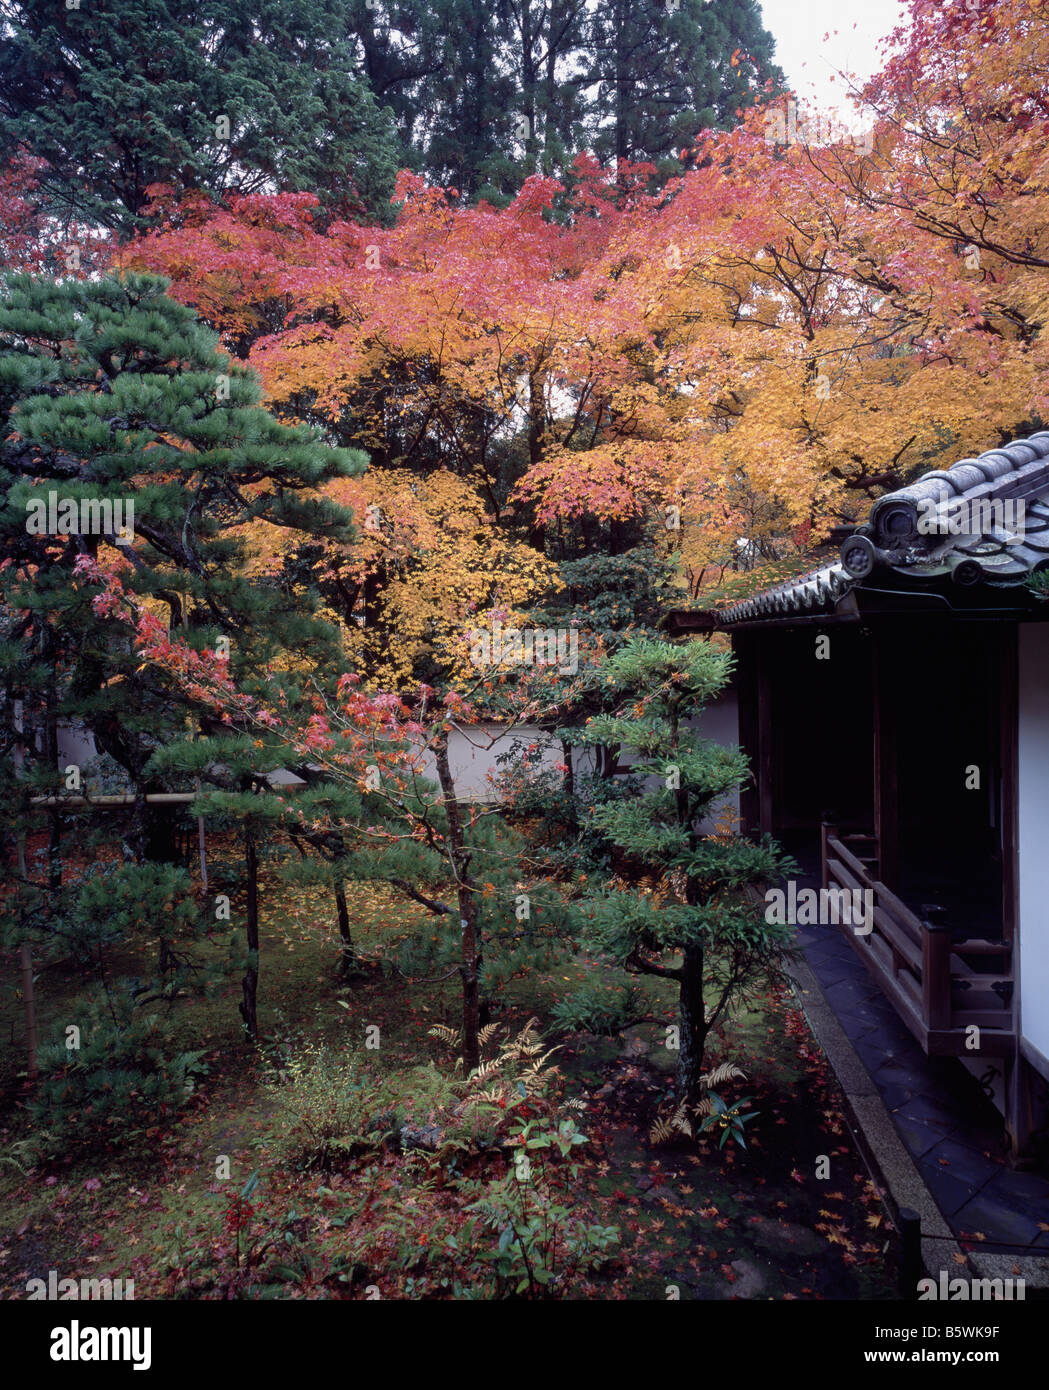 Koto-In Daitokuji Kyoto - Autumn Leaves - Stock Image